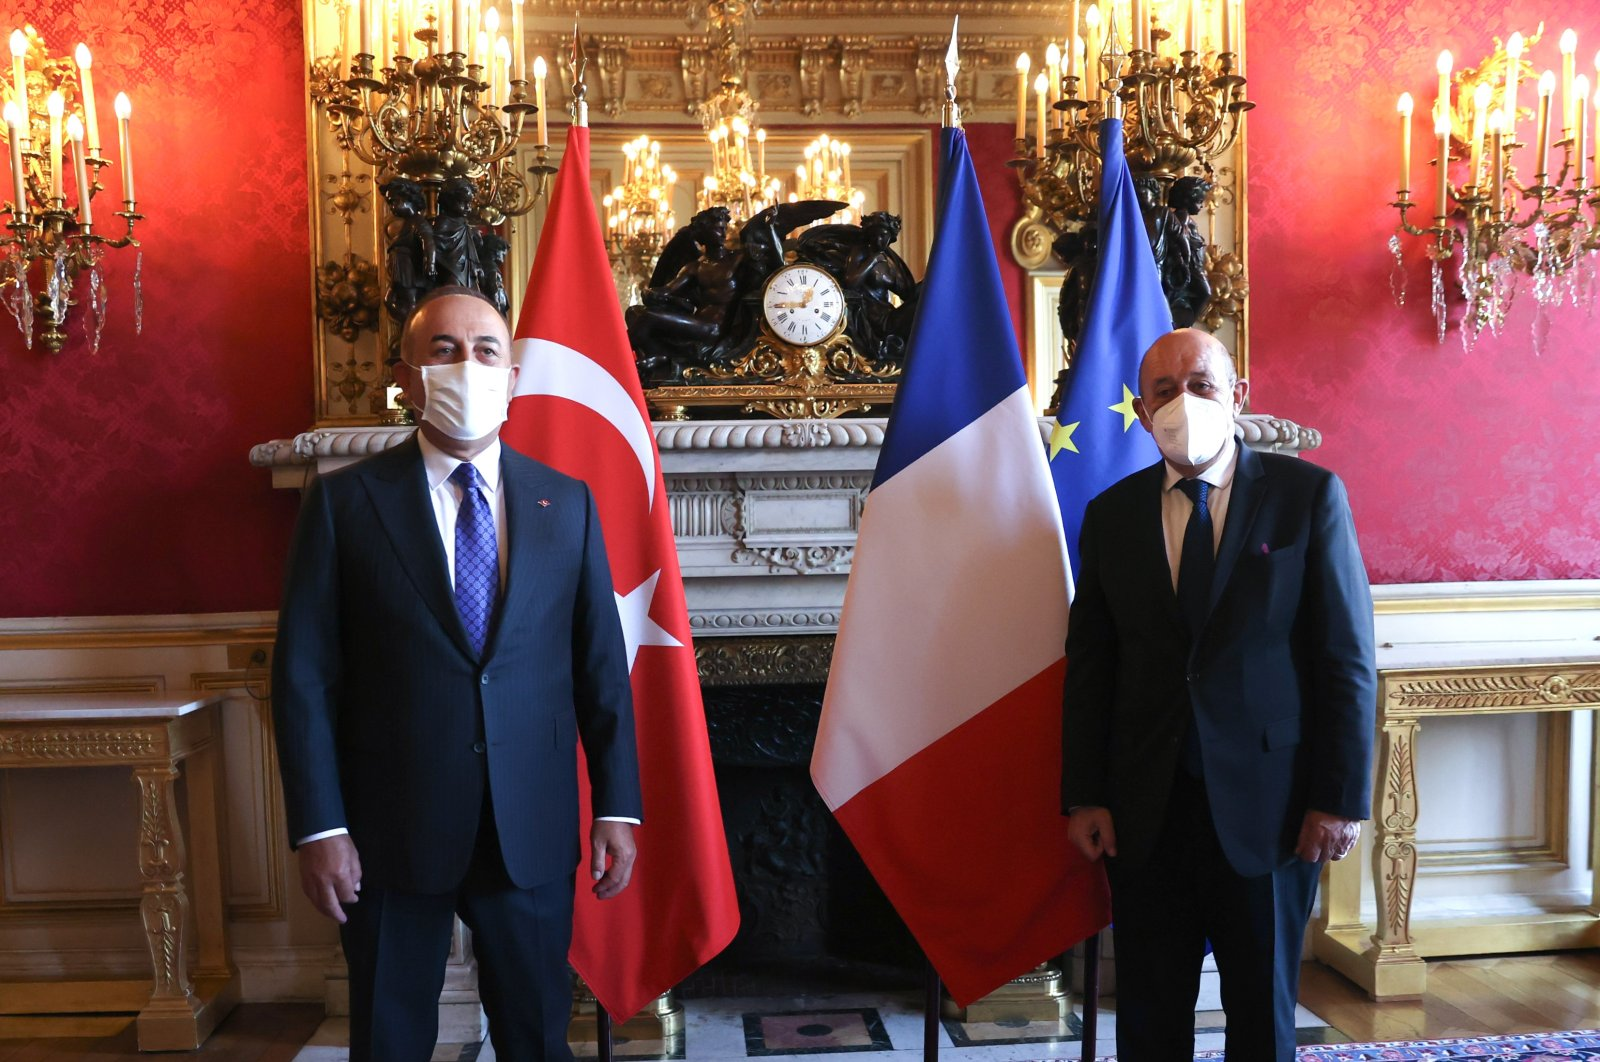 Foreign Minister Mevlüt Çavuşoğlu (L) meets with his French counterpartJean-Yves Le Drian in Paris, France, June 7, 2021. (AA Photo)